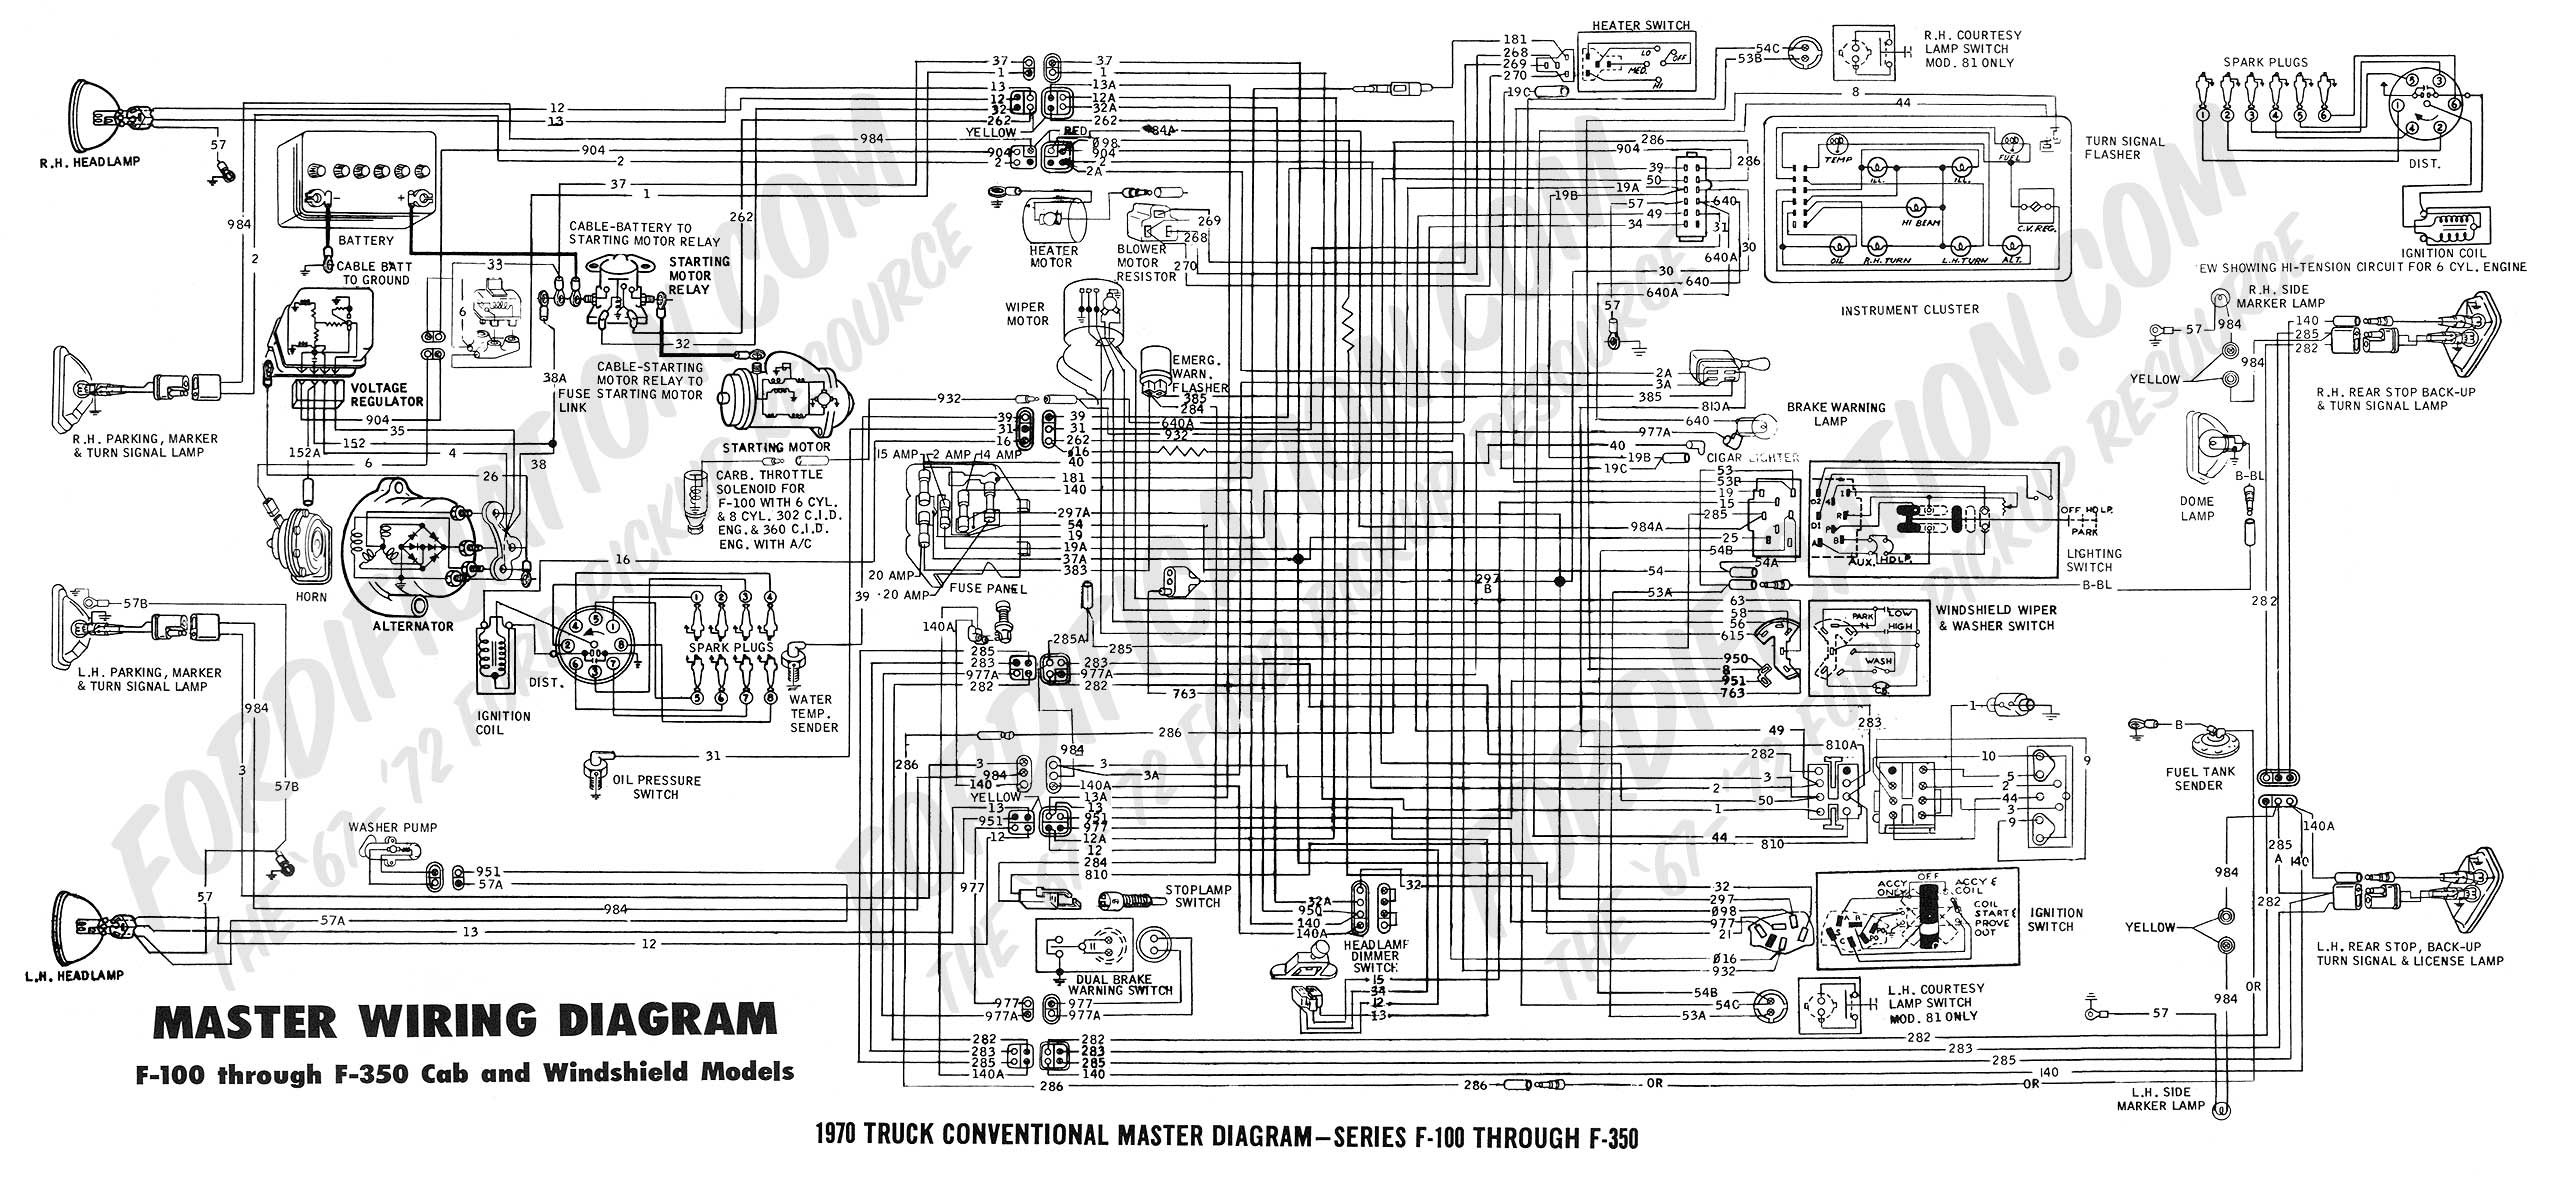 3ACE Ford F 250 Trailer Wiring Harness Diagram | Wiring LibraryWiring Library